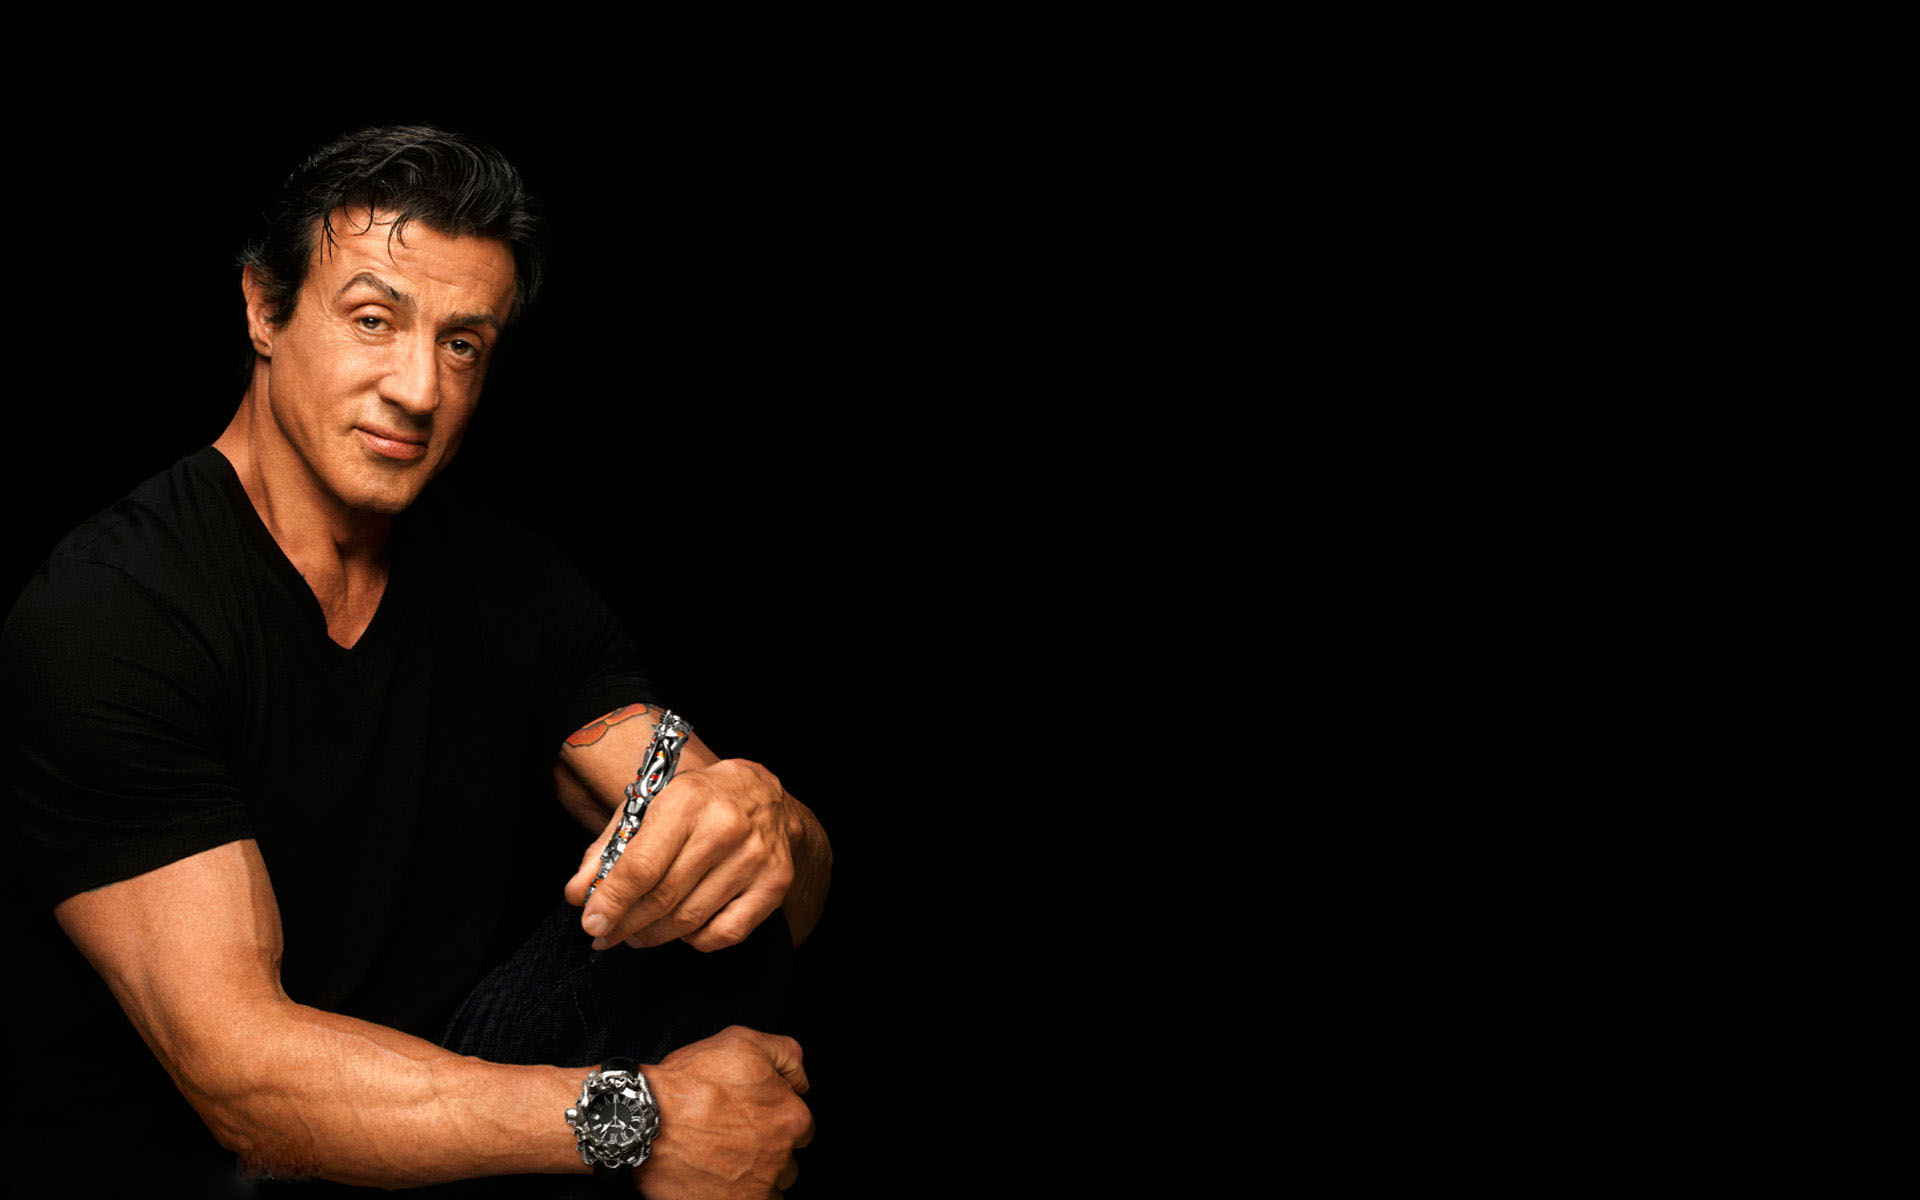 1920x1200 - Sylvester Stallone Wallpapers 5